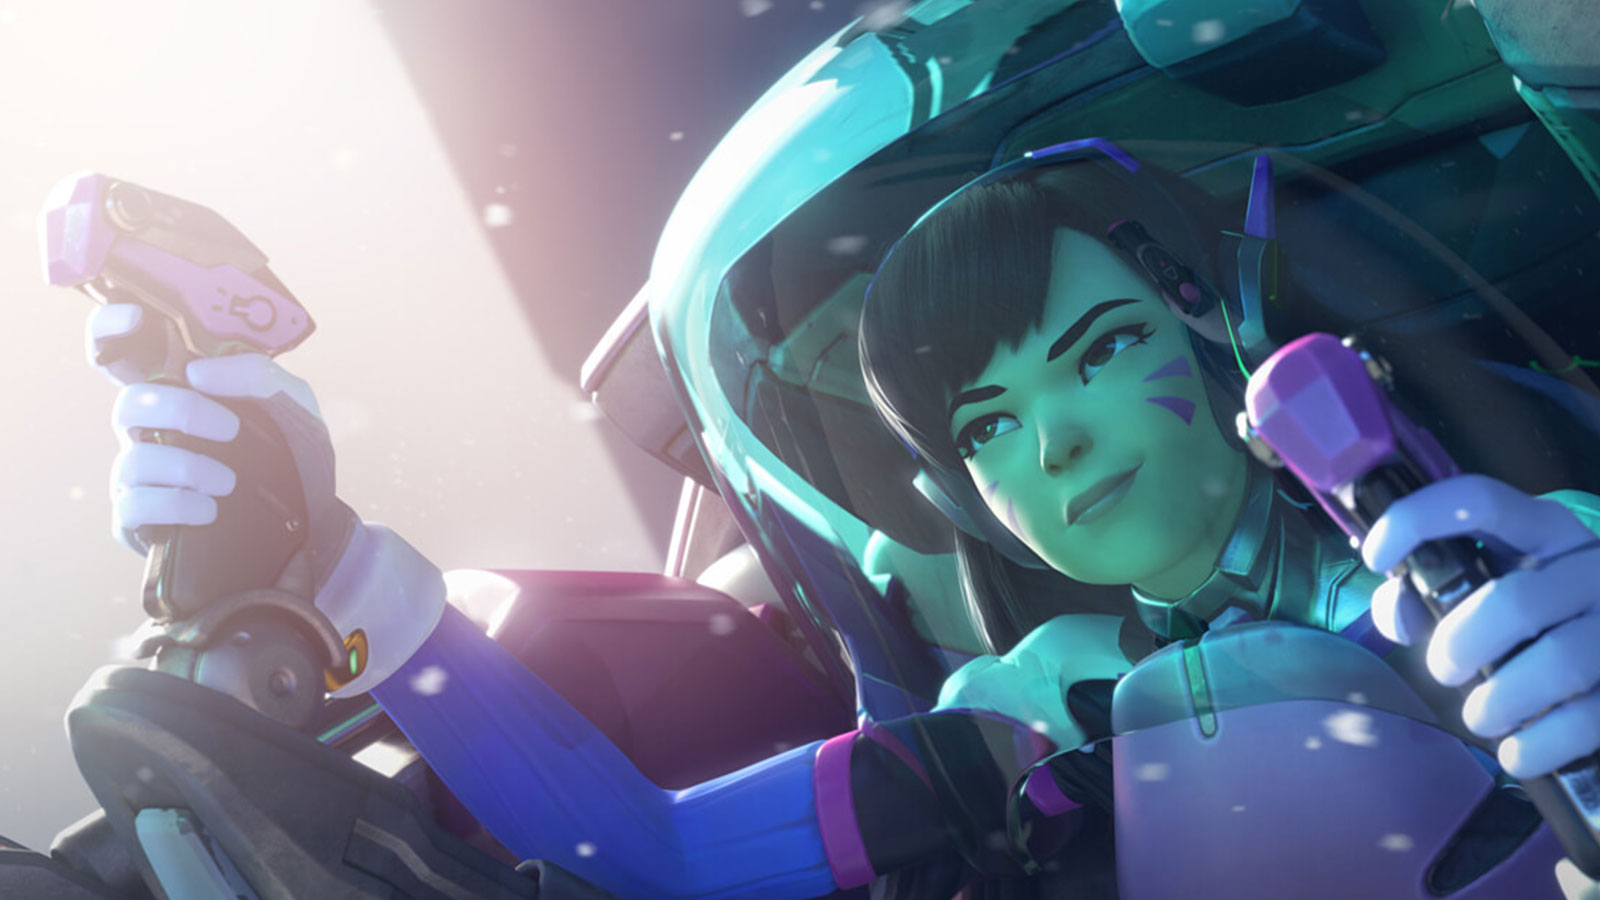 Screenshot of Overwatch character D.Va piloting her armored battle suit